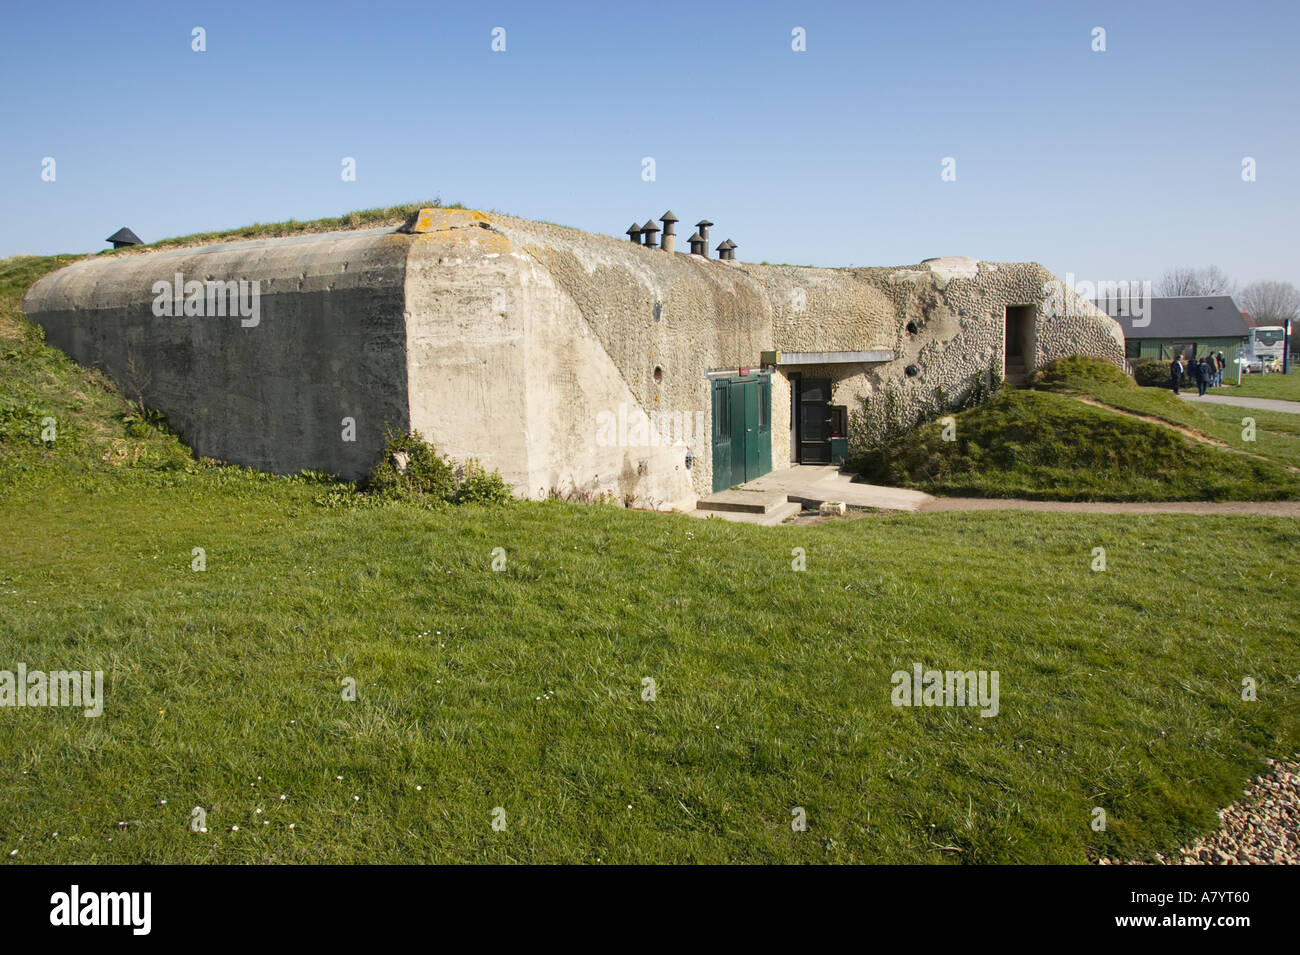 number 1 casemate at the merville battery merville normandy france stock photo royalty free. Black Bedroom Furniture Sets. Home Design Ideas